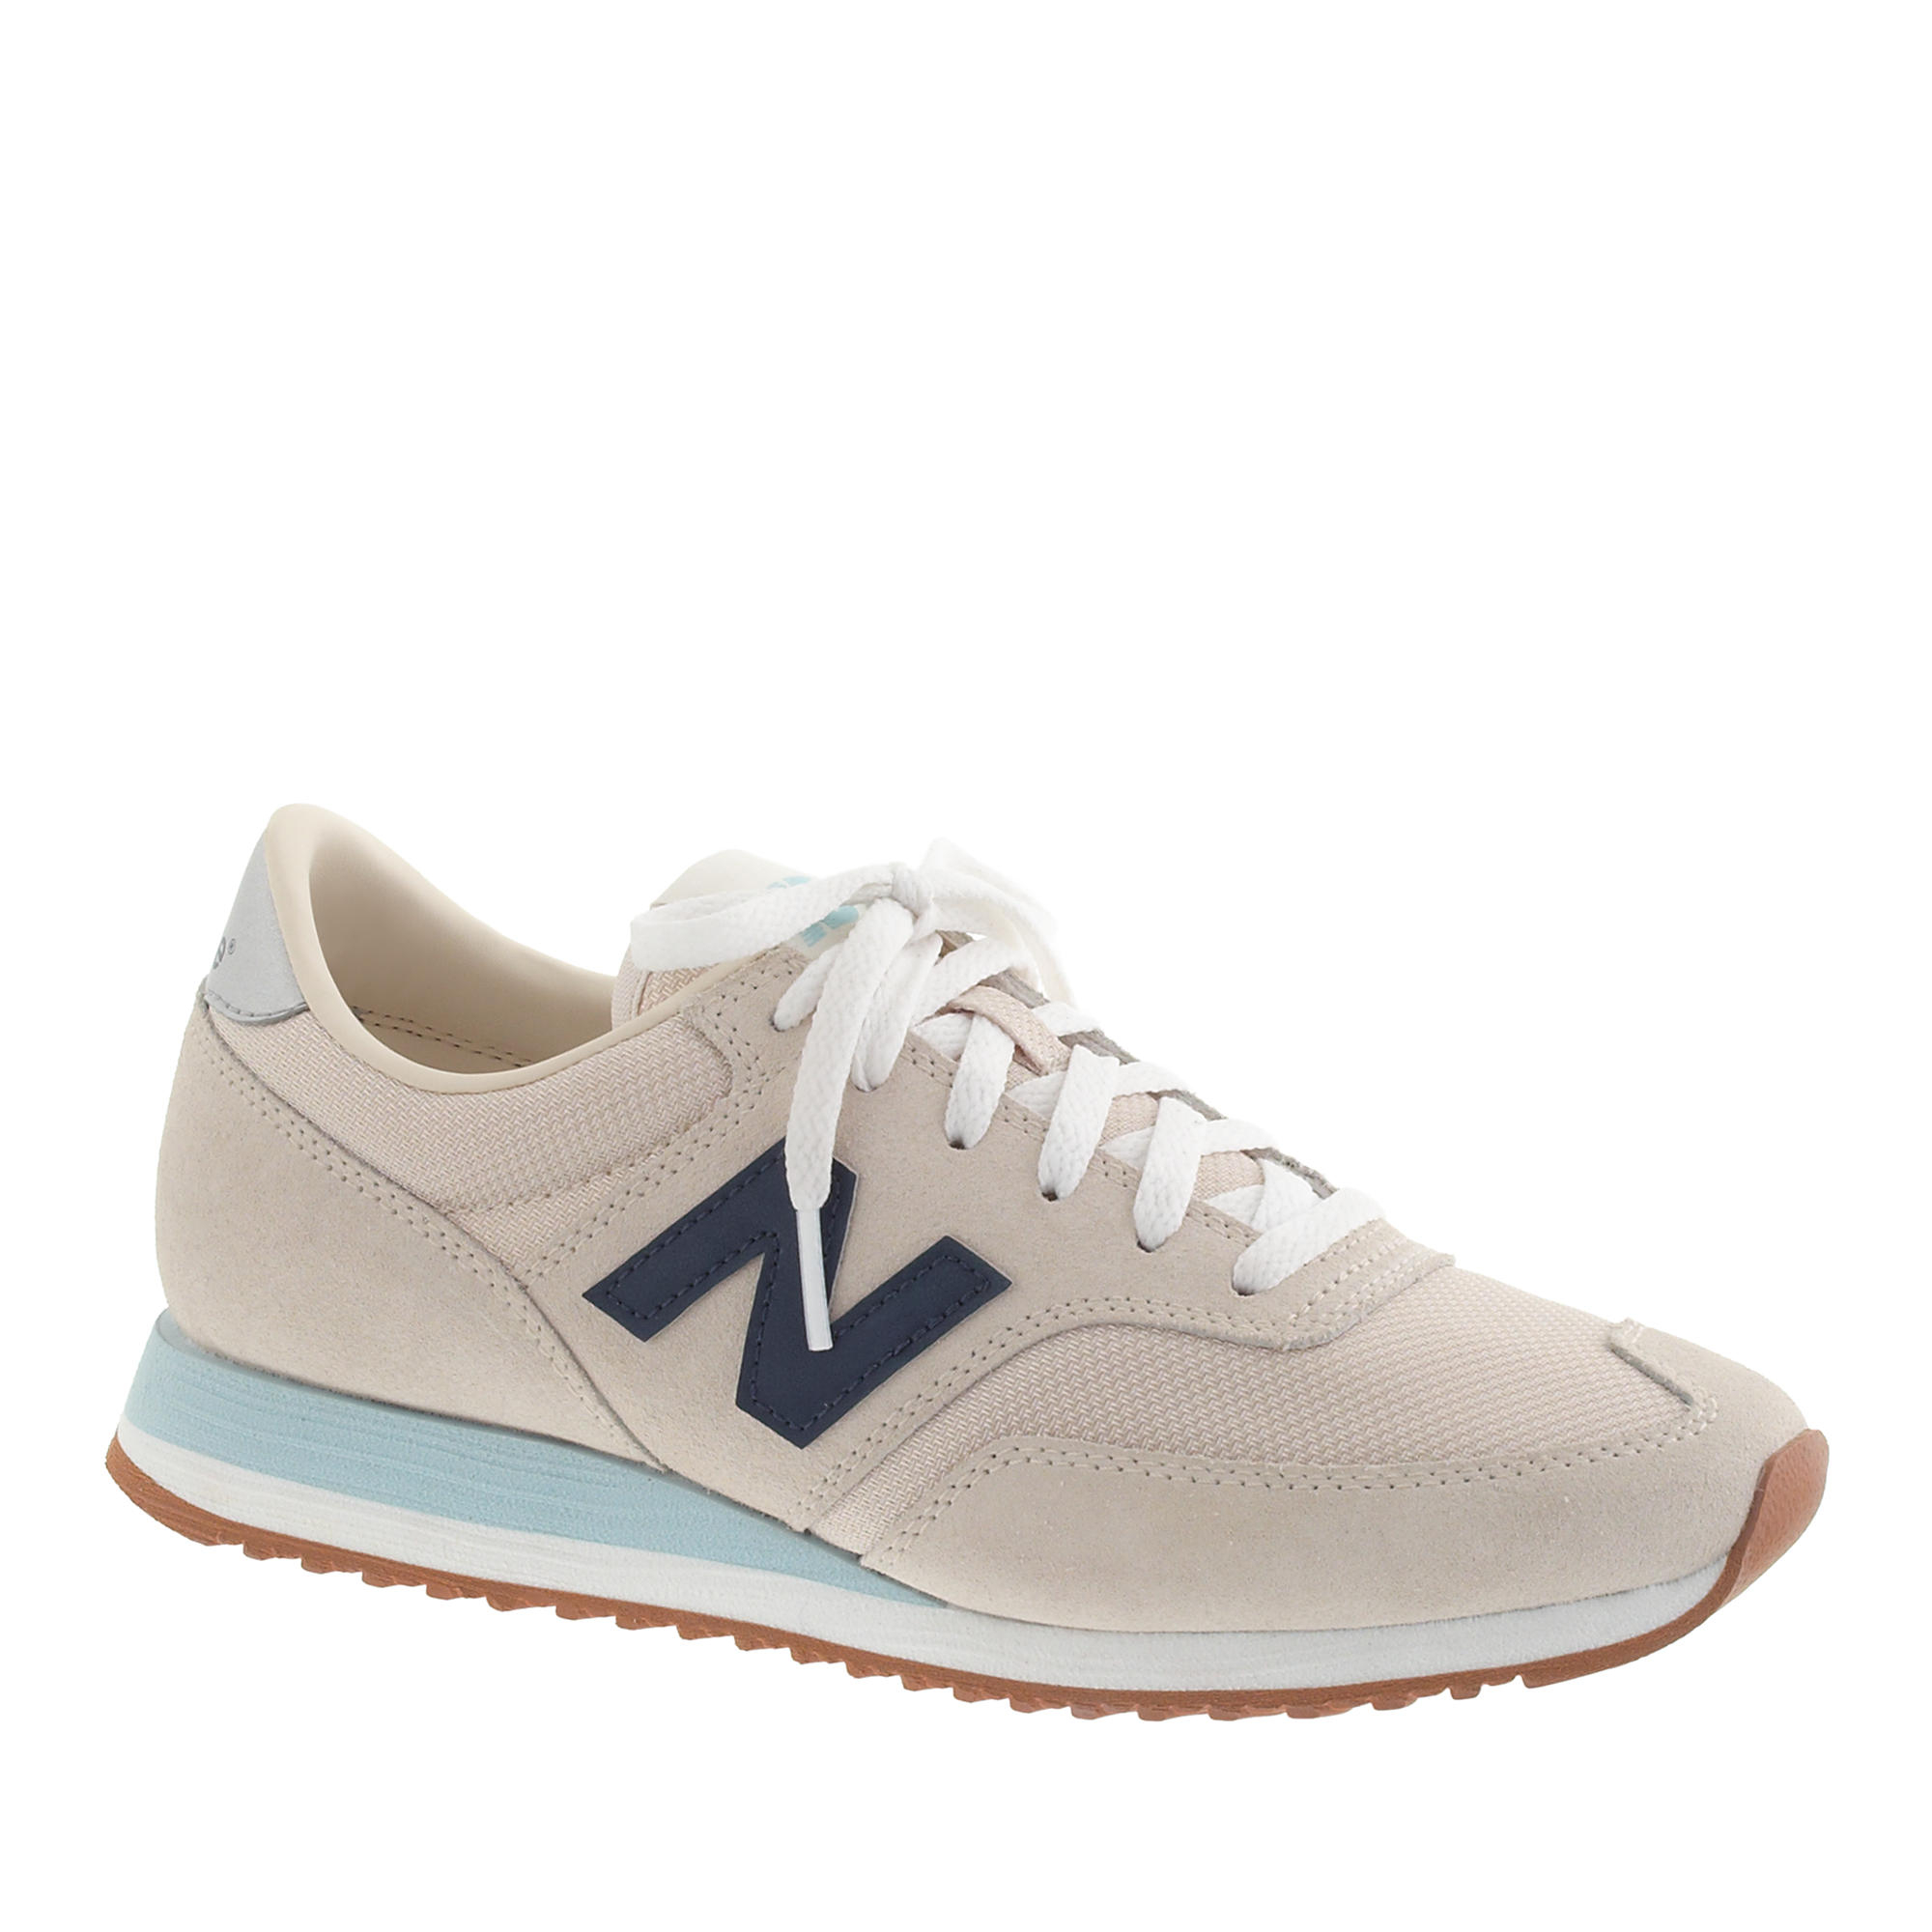 ... canada lyst j.crew womens new balance 620 sneakers in natural 2368f  2399c 9a81184b3